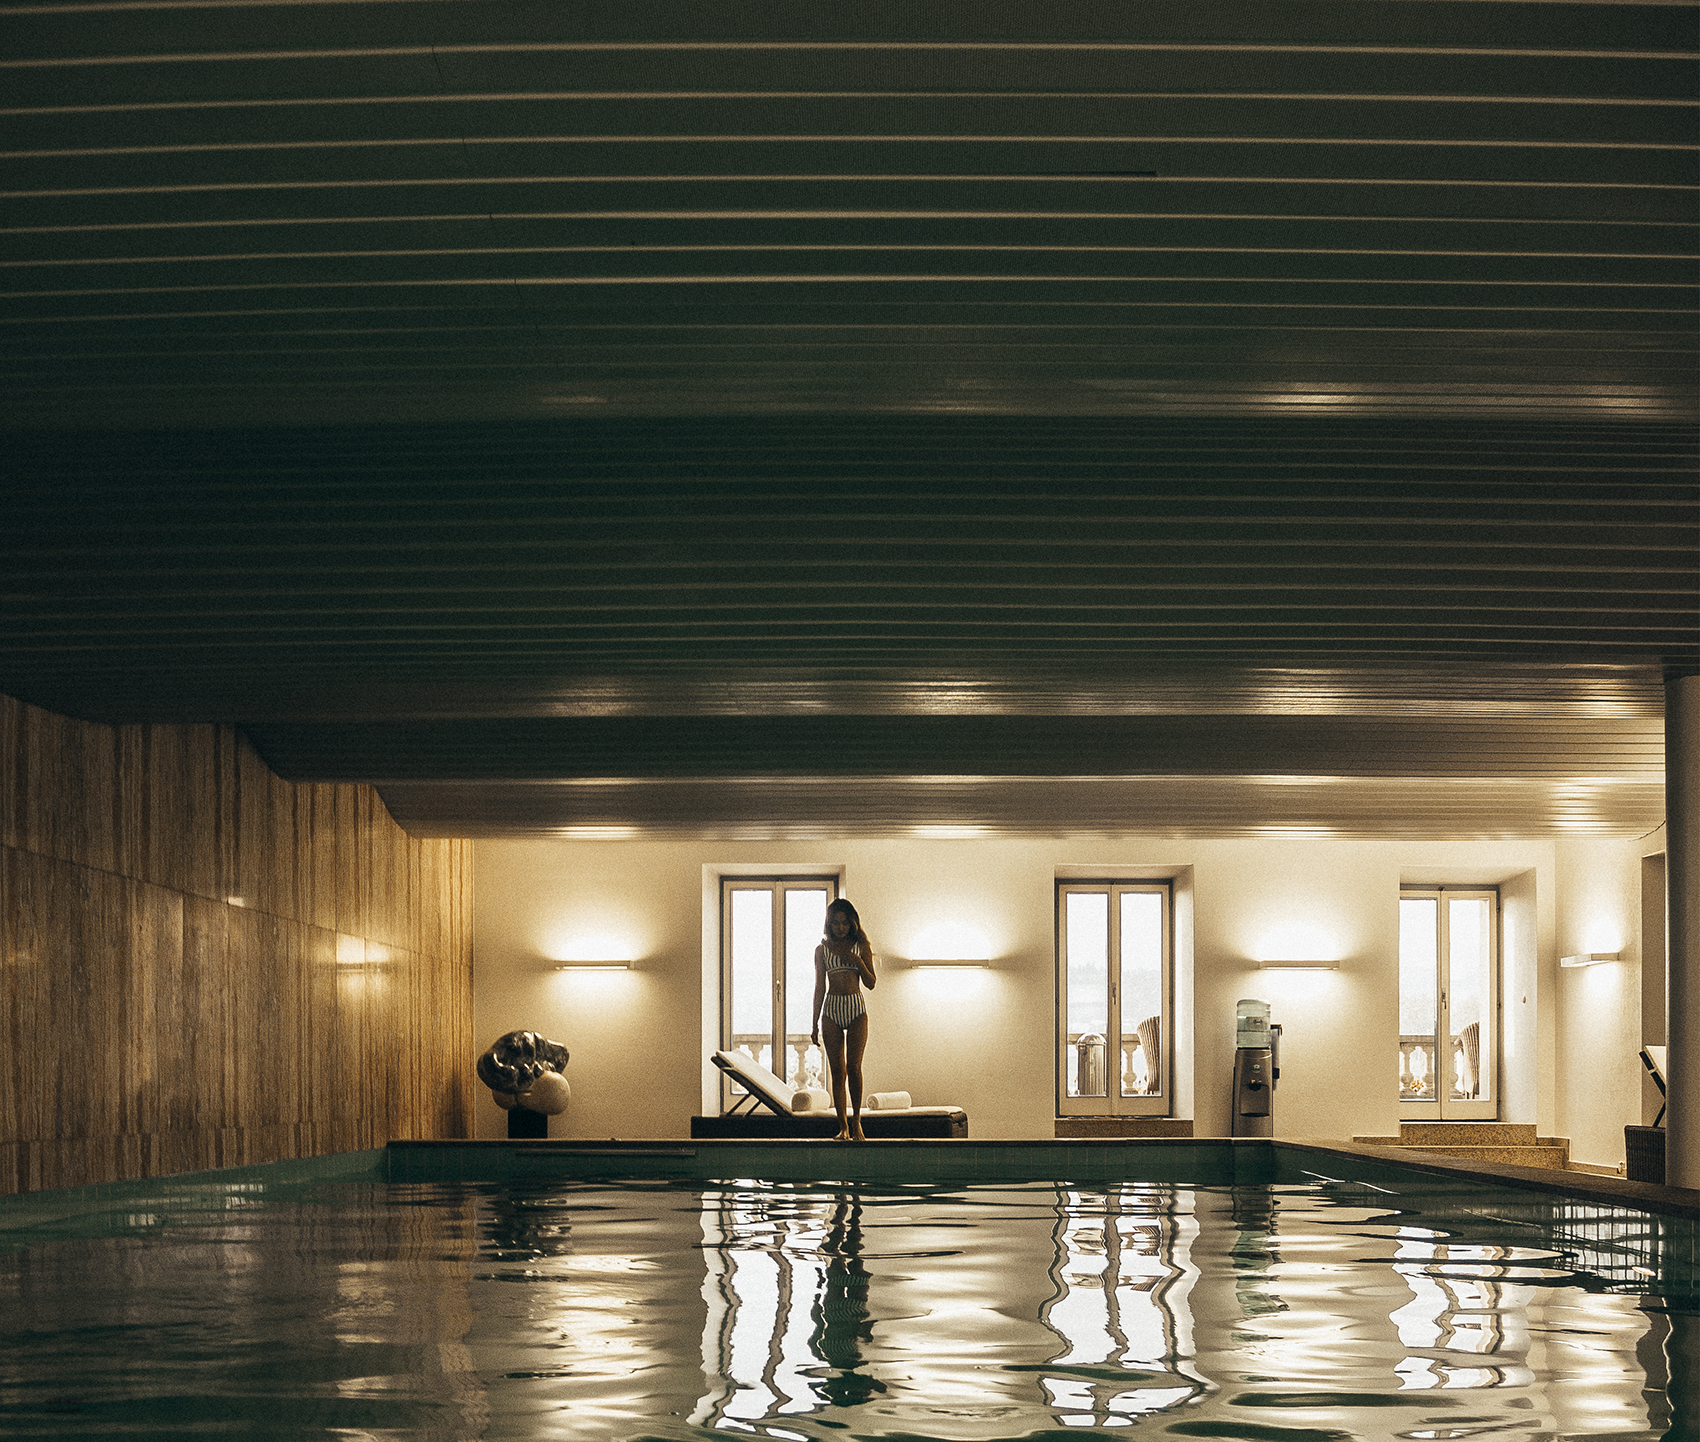 Showcasing the large swimming pool at Grand Hotel National Lucerne